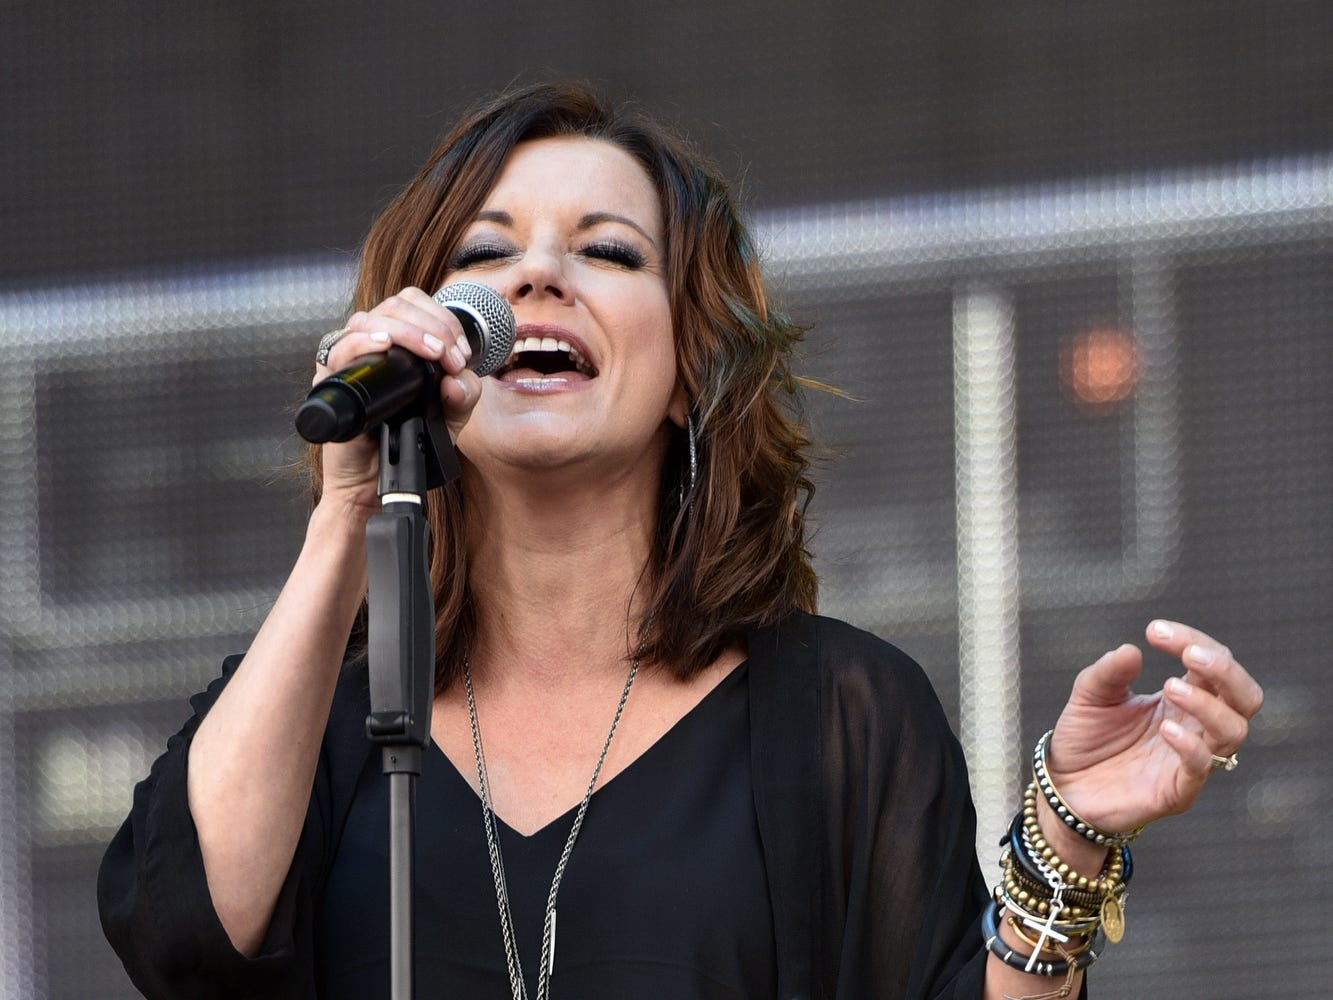 April 27 GRAND OLE OPRY WITH MARTINA MCBRIDE, MORE: 7 p.m. Grand Ole Opry House, $40-$110, opry.com